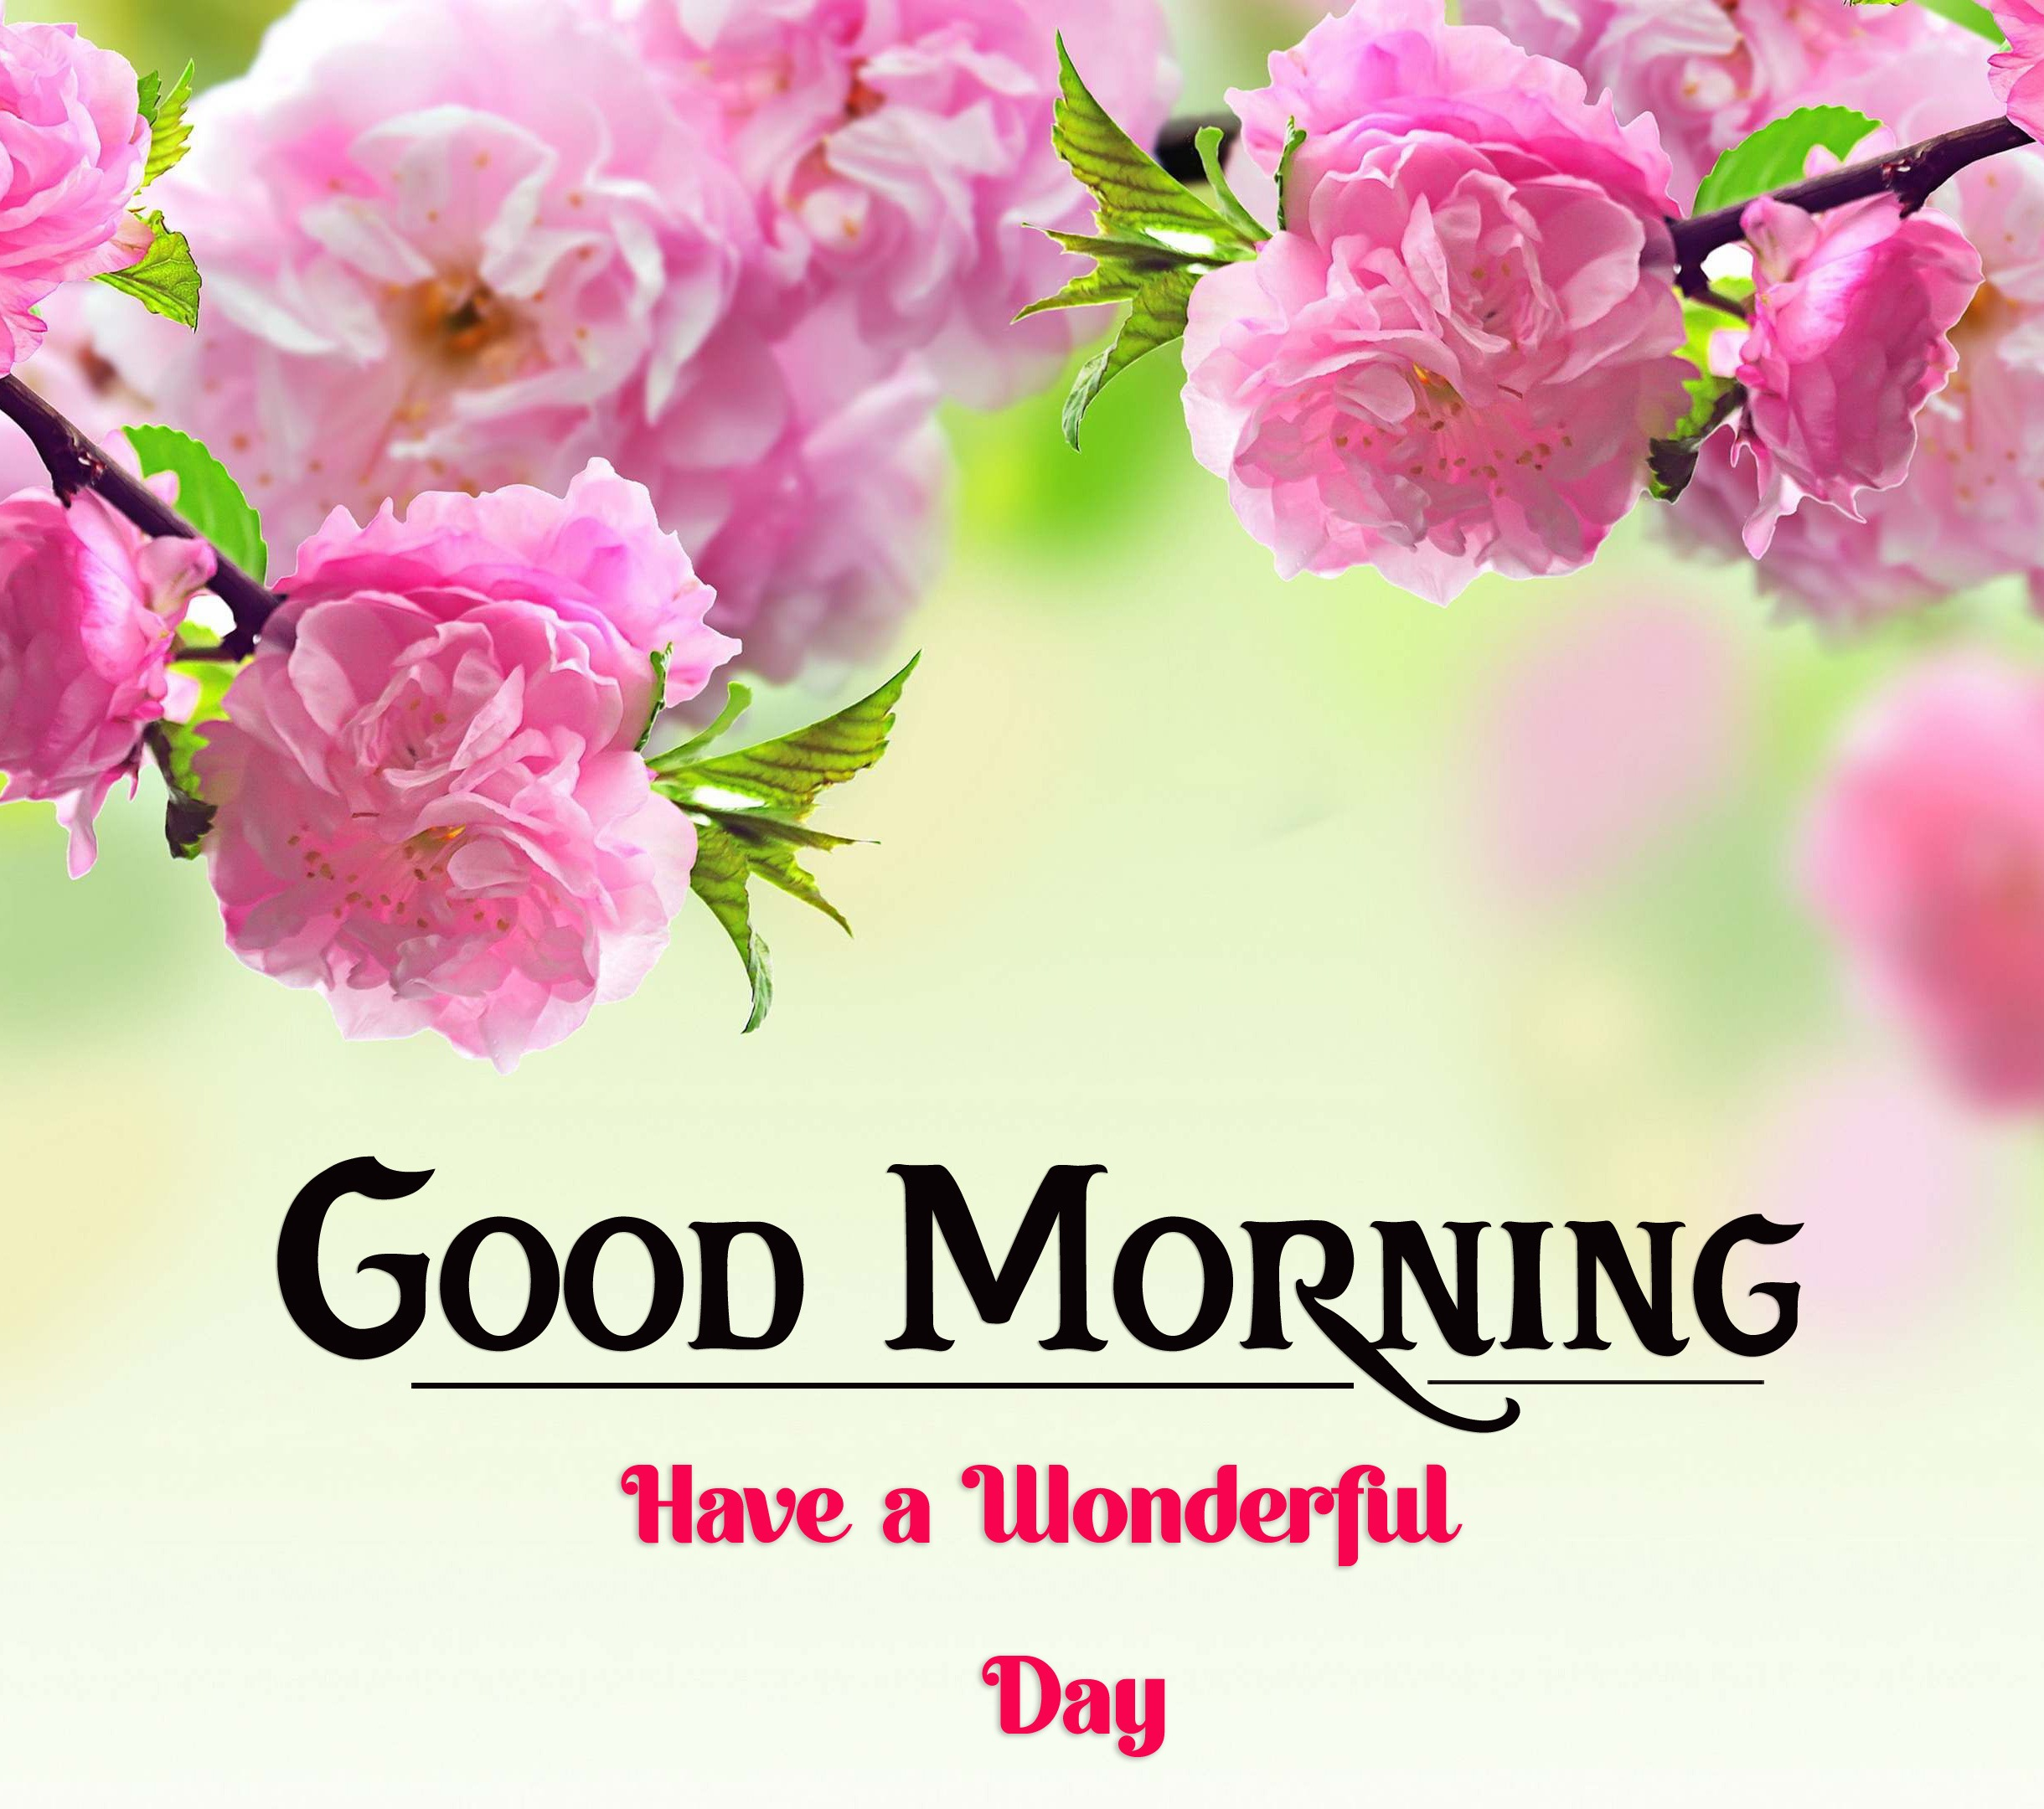 new good morning images photo for download